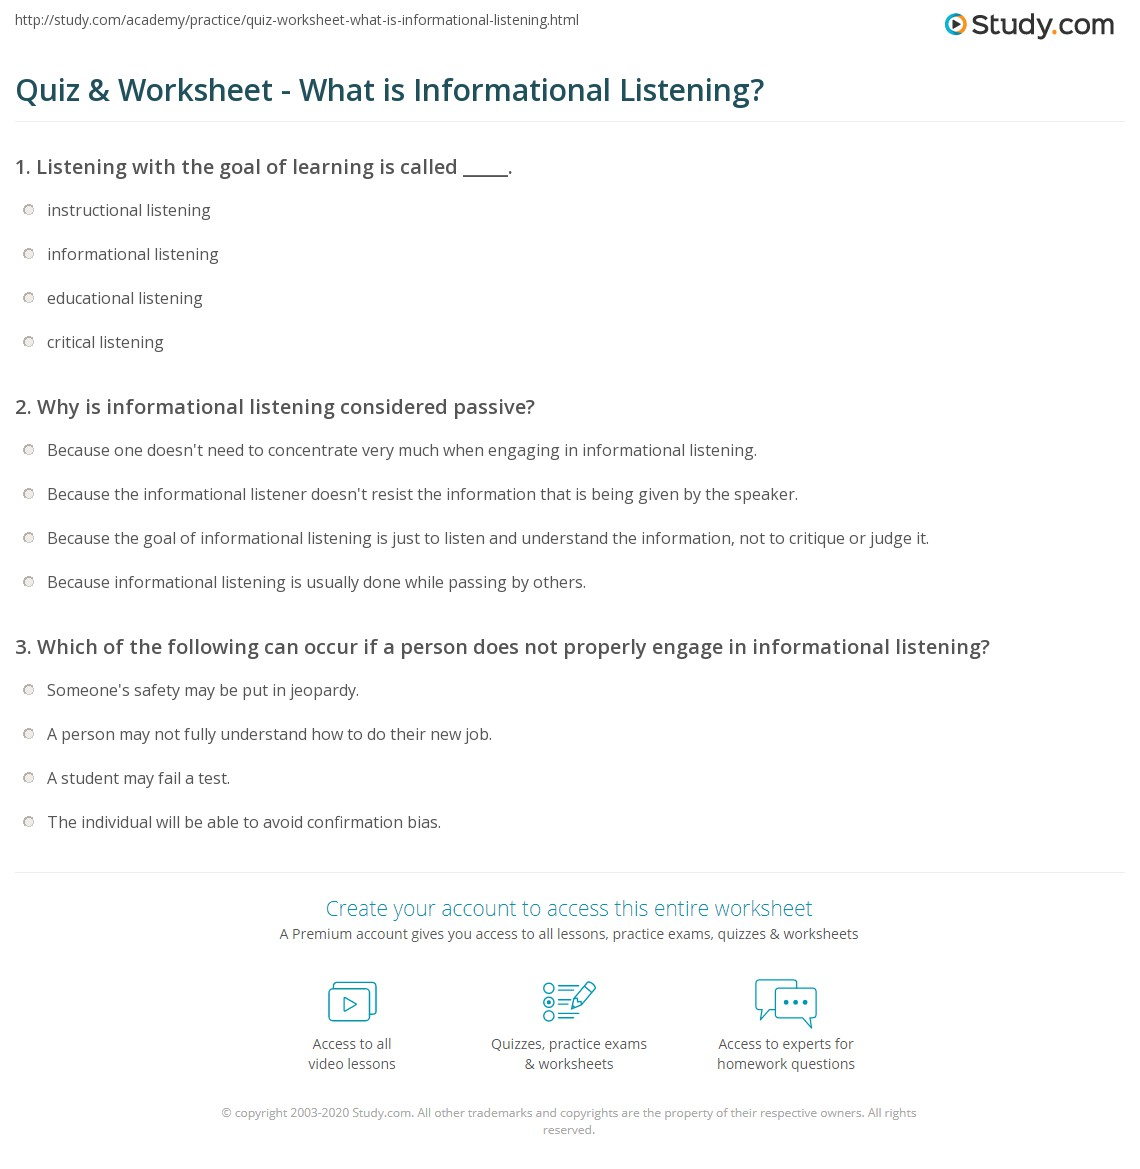 quiz worksheet what is informational listening com print informational listening definition skills worksheet